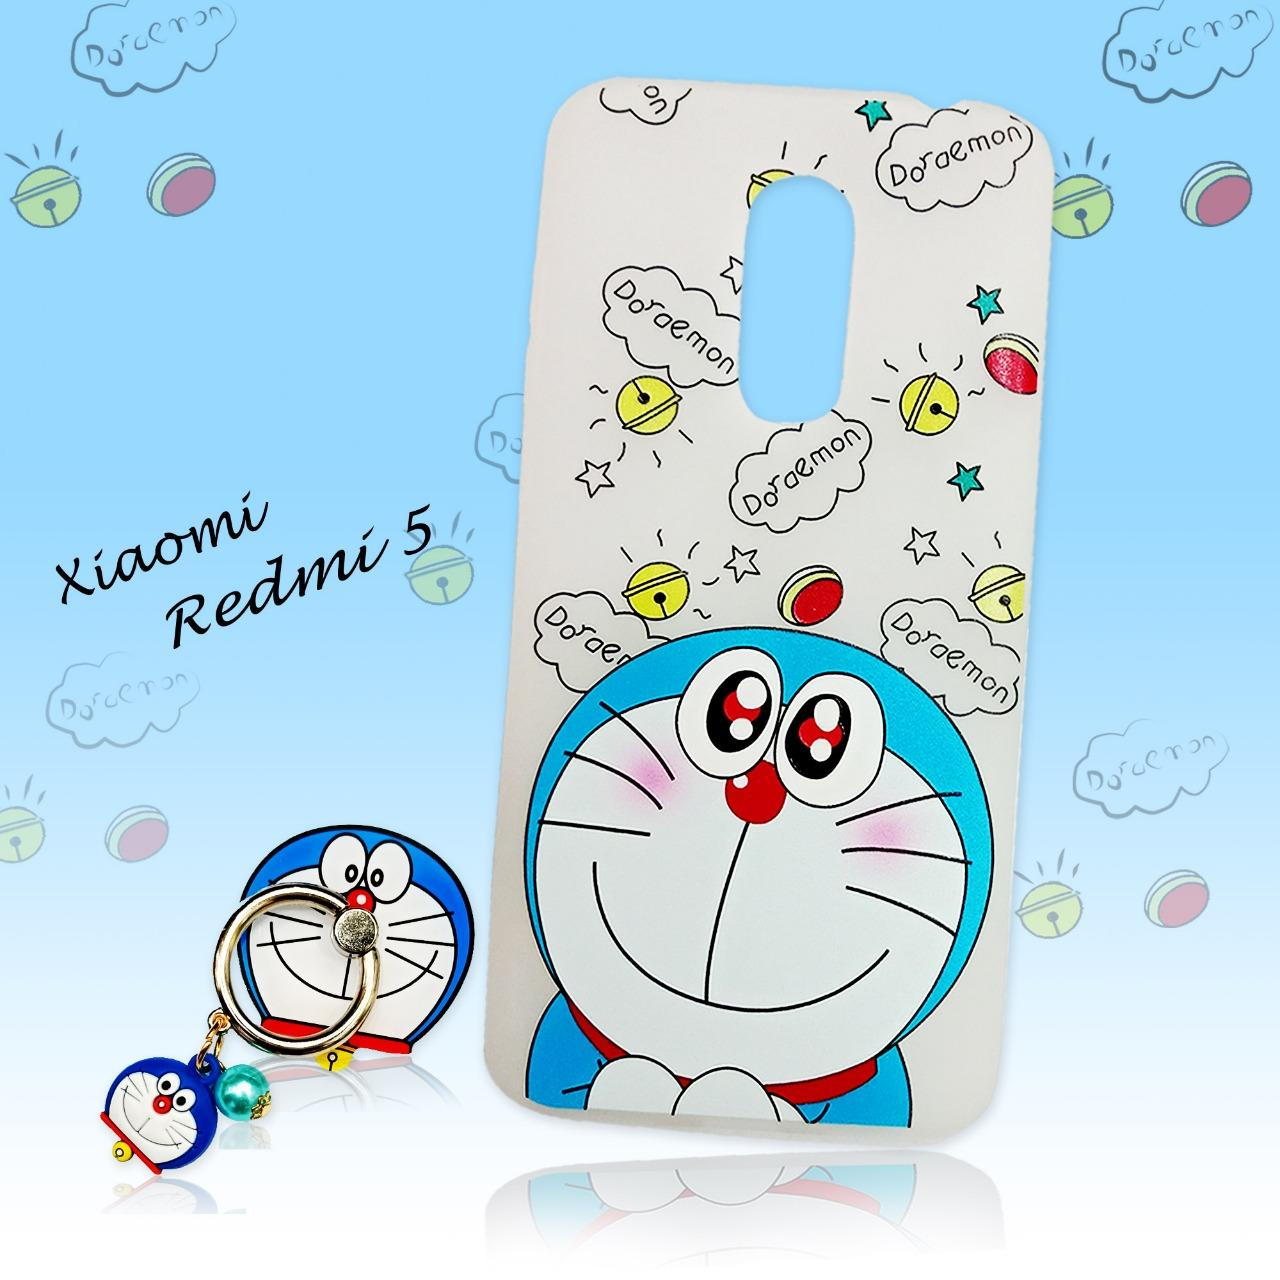 Rajamurah Softcase Plus Ring New Xiaomi Redmi 5